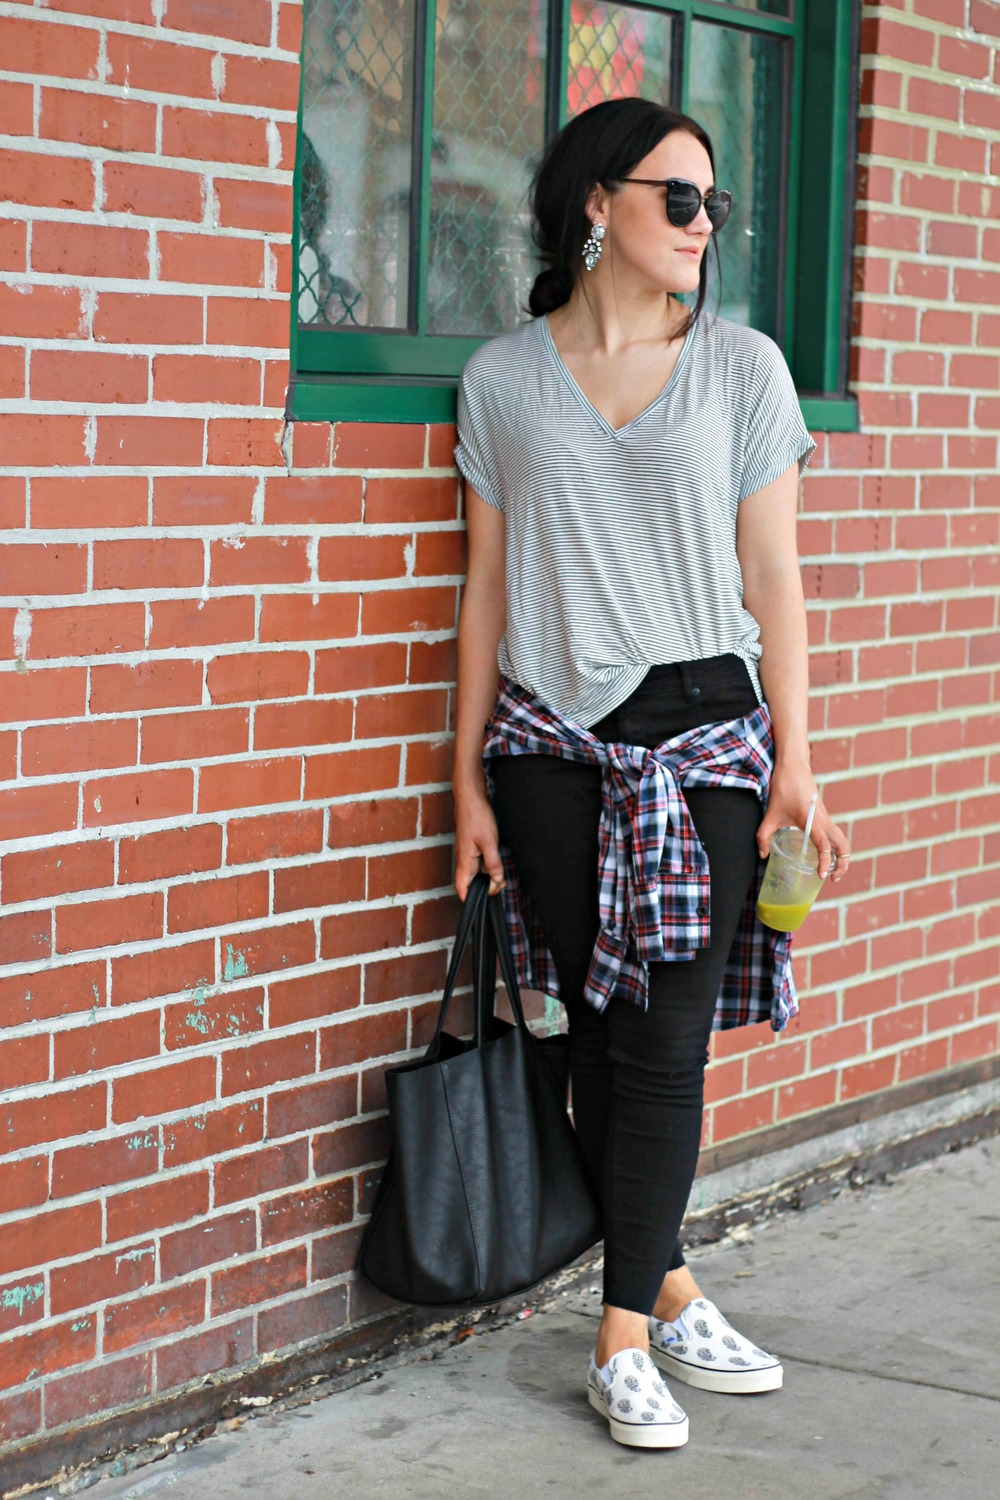 Zara TRF v-neck (soldout) similar (  here  ) (  here  )  Thrifted Flannel  Vans x Madewell slip-ons (soldout) similar (  here  ) (  here  )  F21 distressed denim (  here  )  Bauble Bar Aztec earrings (  here  )     Photos by Kristina Alexis